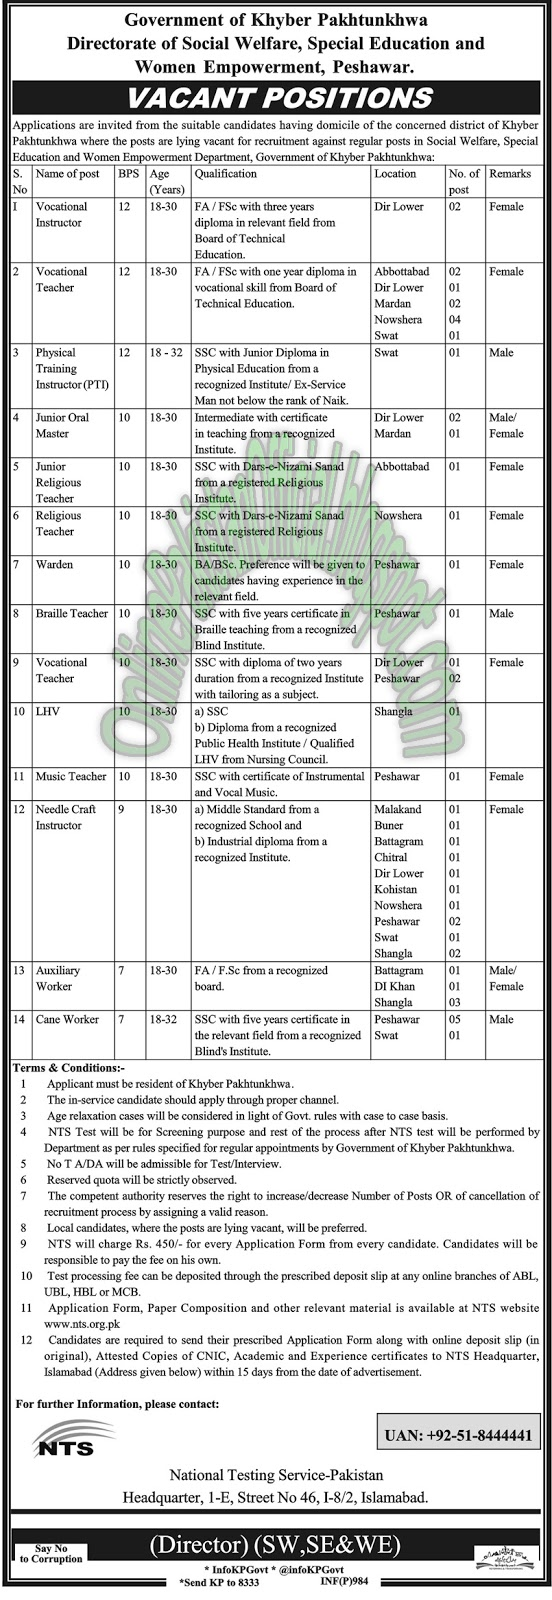 Directorate of Social Welfare, Special Education And Women Empowerment Peshawar jobs